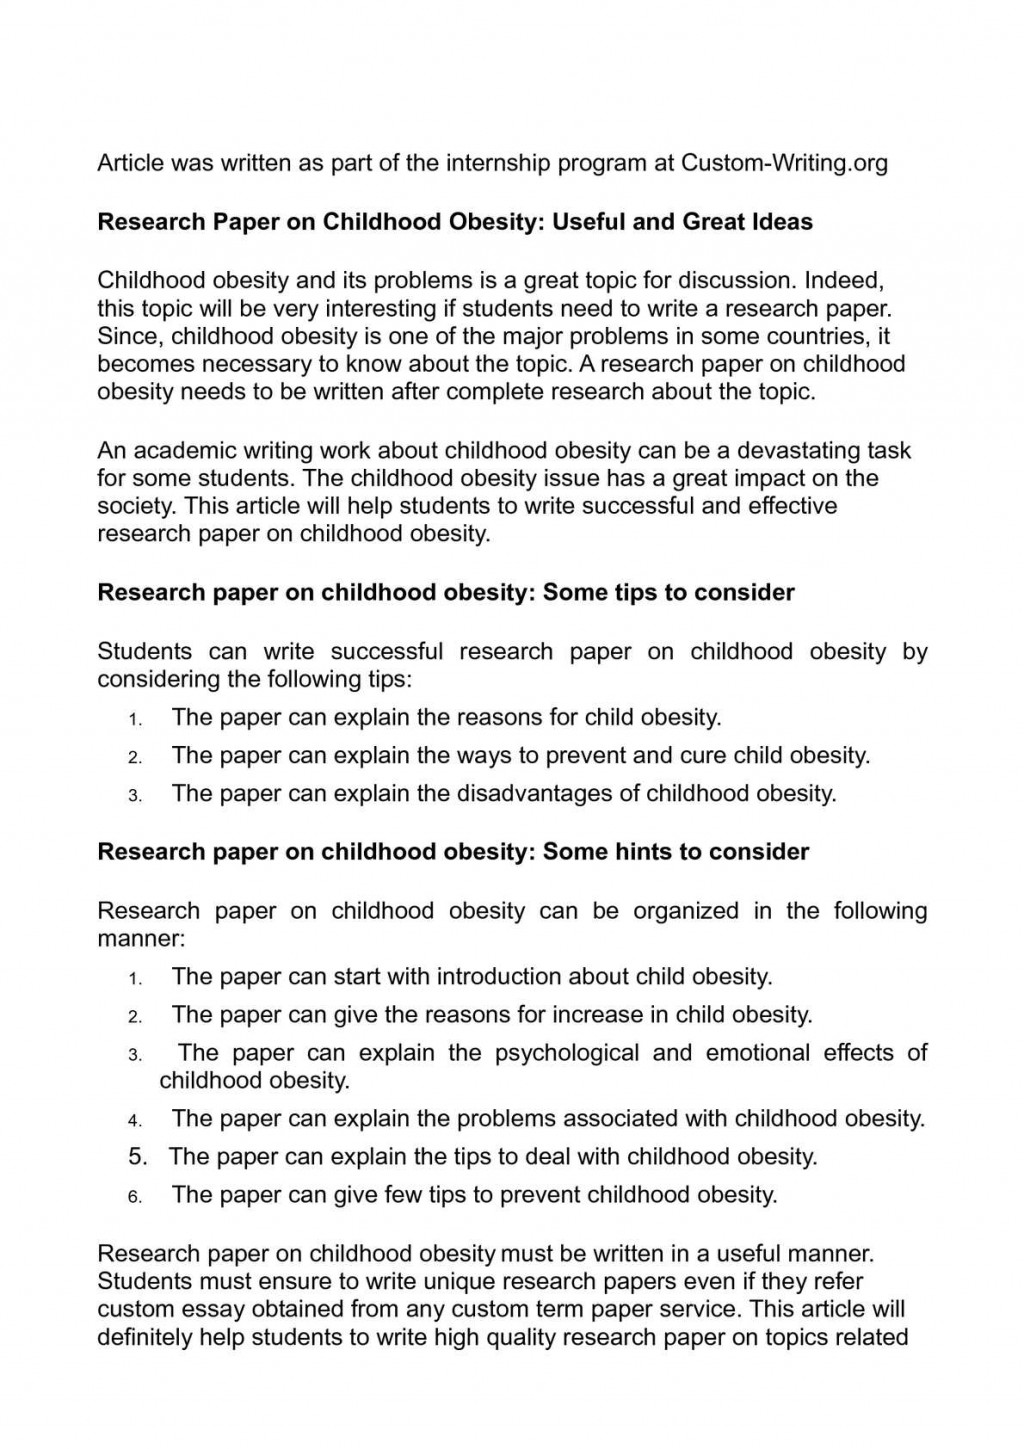 005 Obesity Research Paper Topics Fascinating Childhood Large